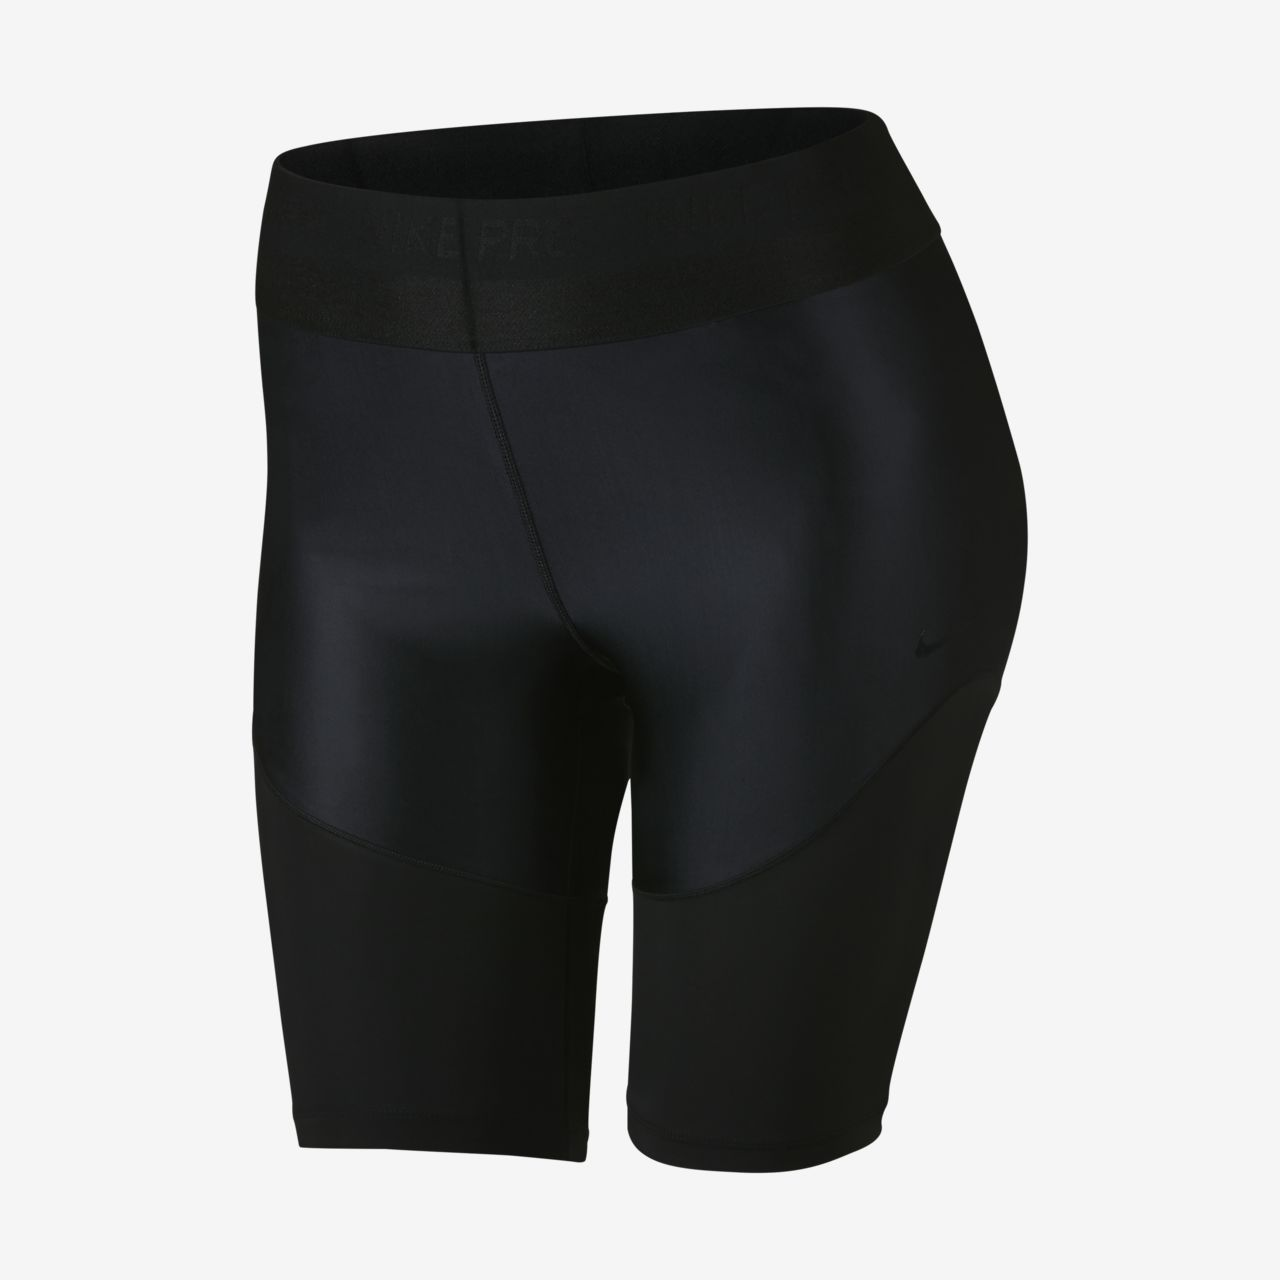 Nike Pro HyperCool Women's Training Shorts (Plus Size)